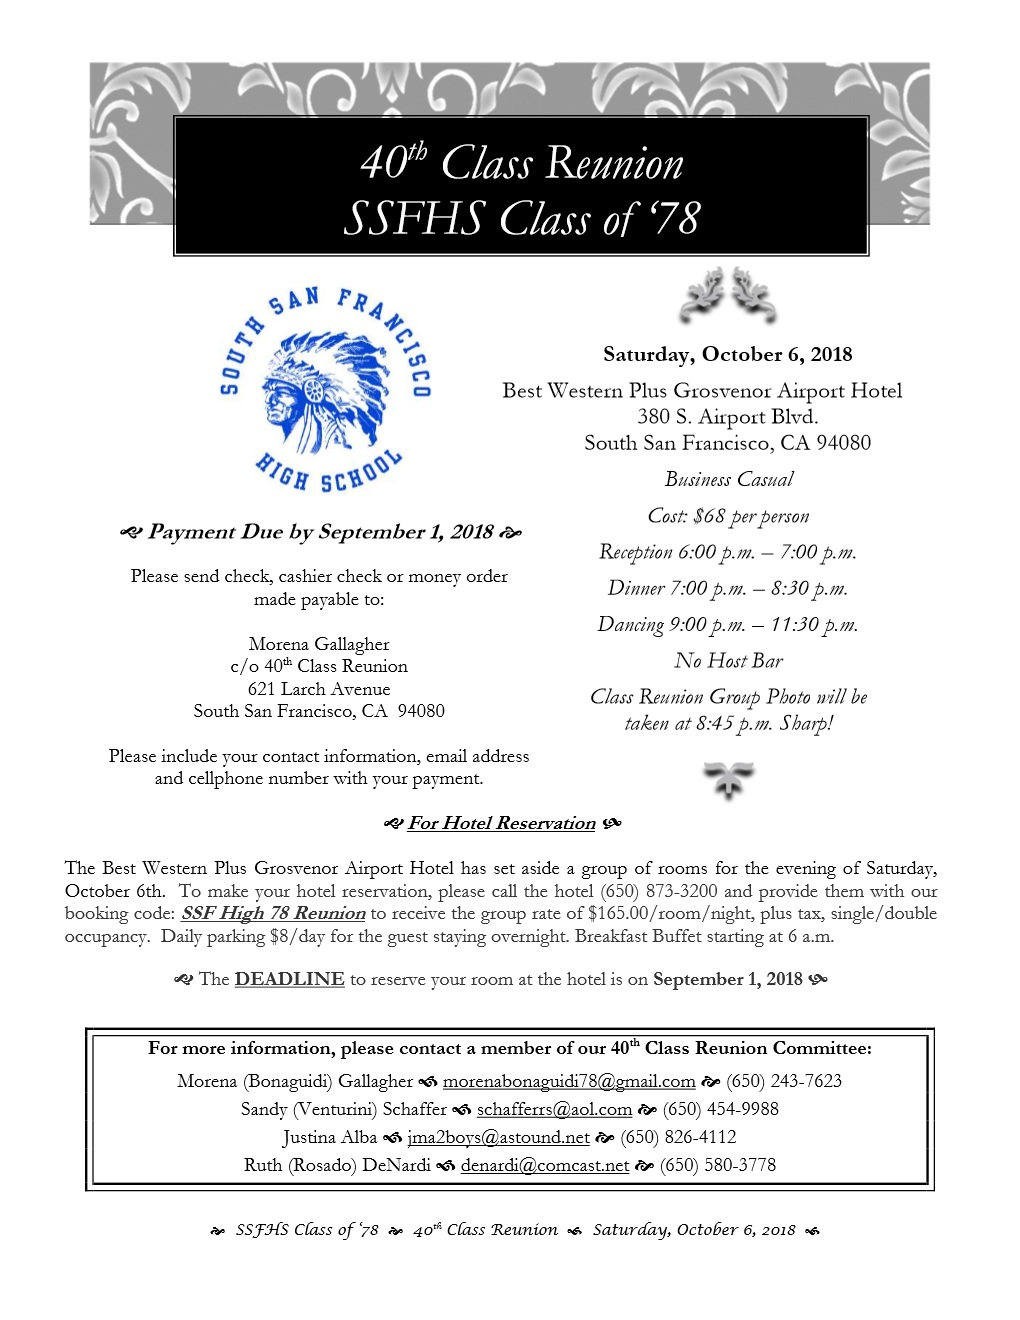 SSFHS 40th Class Reunion Set for October 6th at Best Western Grosvenor Hotel